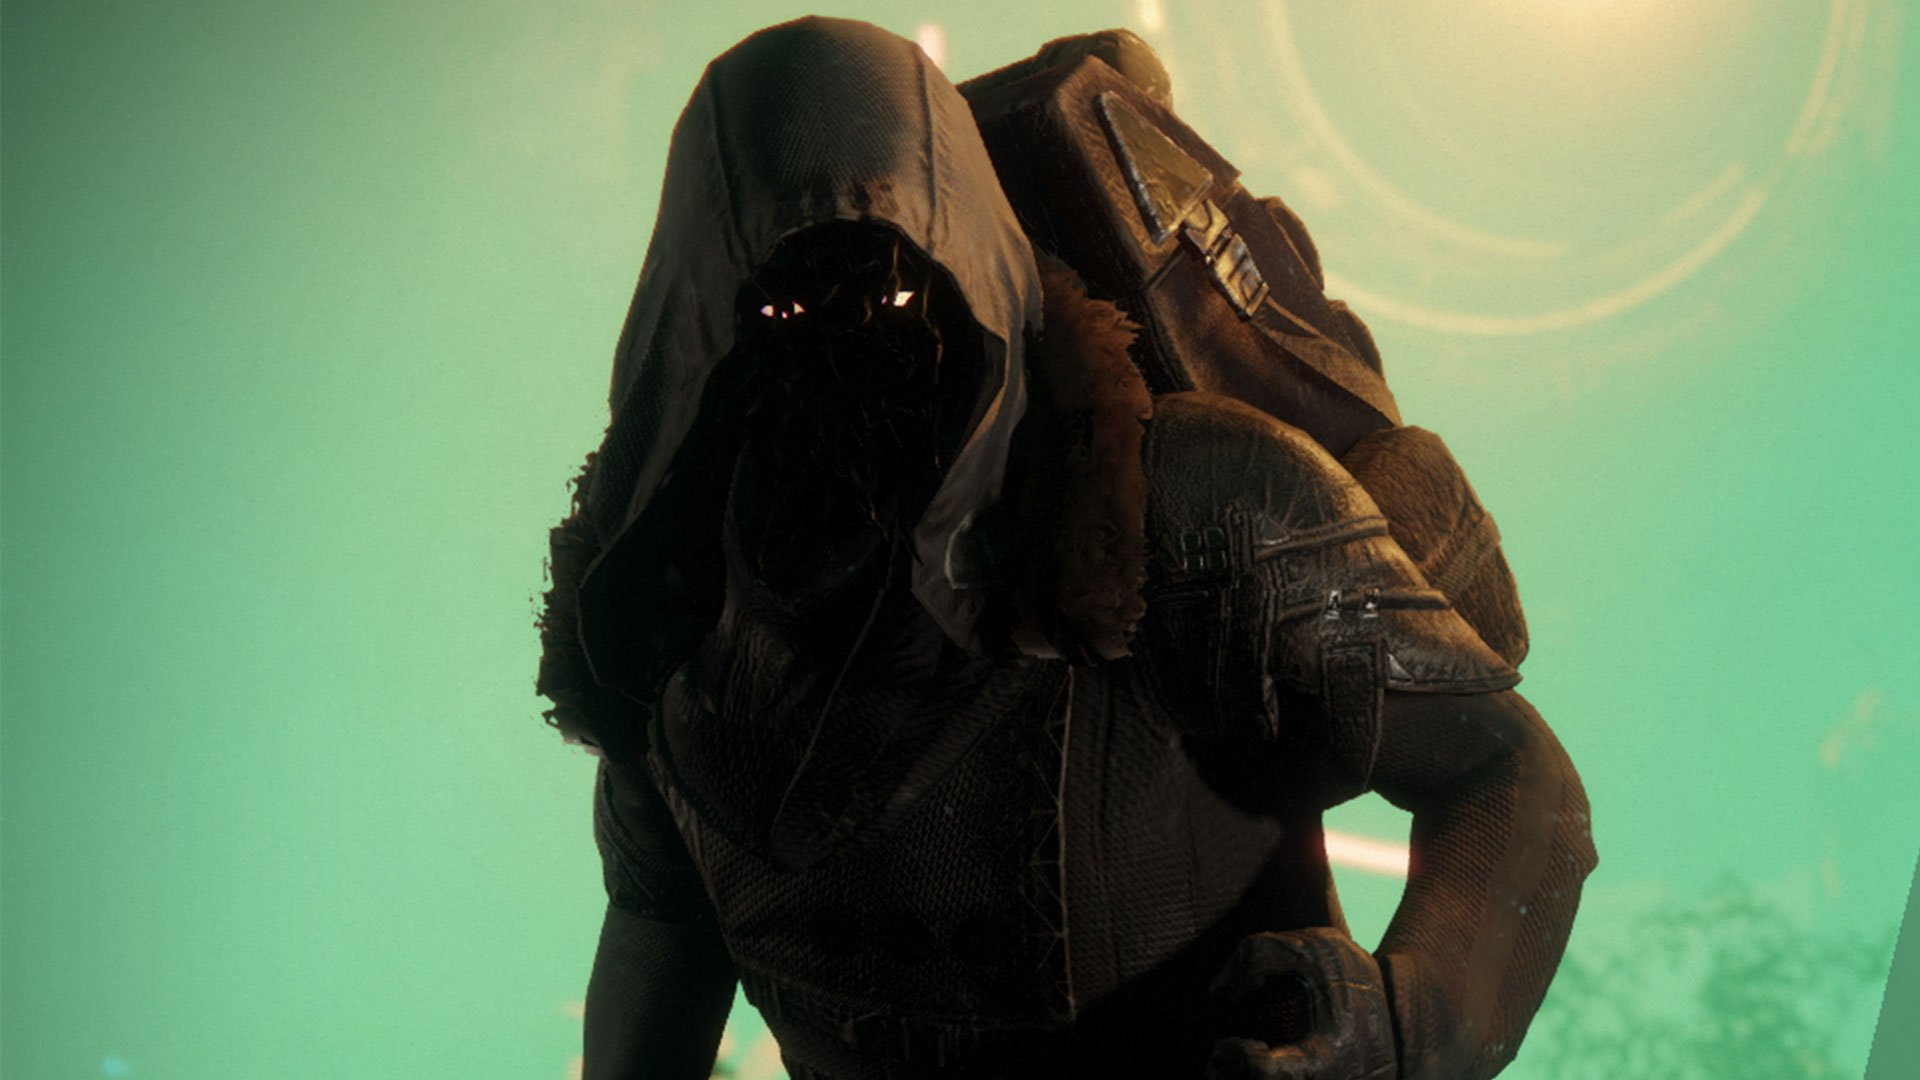 Xur can be found inside of the Tower during the week of June 28, 2019 in Destiny 2.